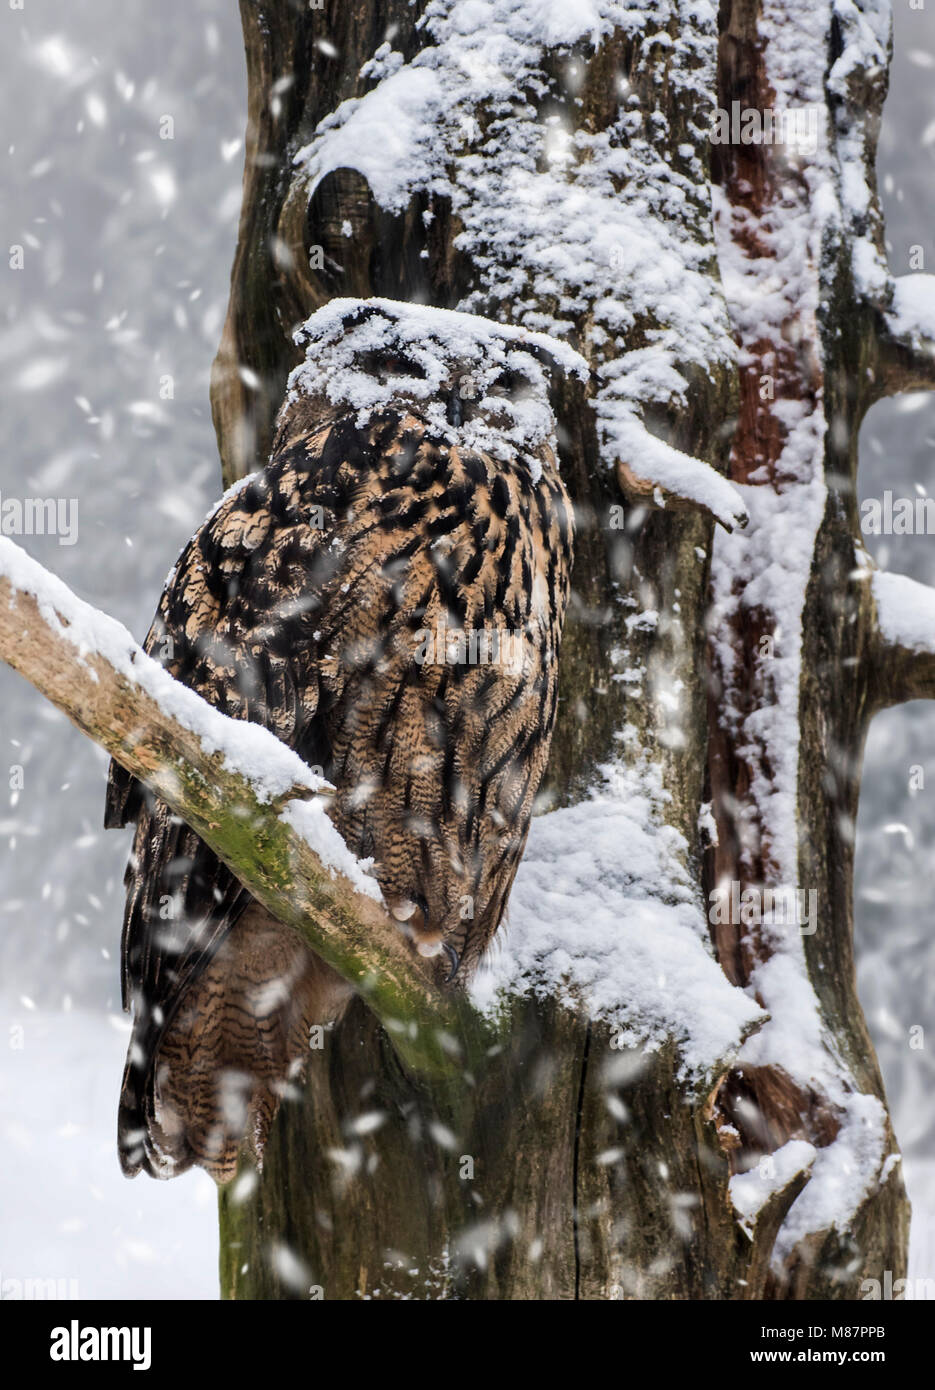 Grand-duc d'Europe / eagle owl (Bubo bubo) avec la face recouverte de neige perché dans l'arbre au Photo Stock